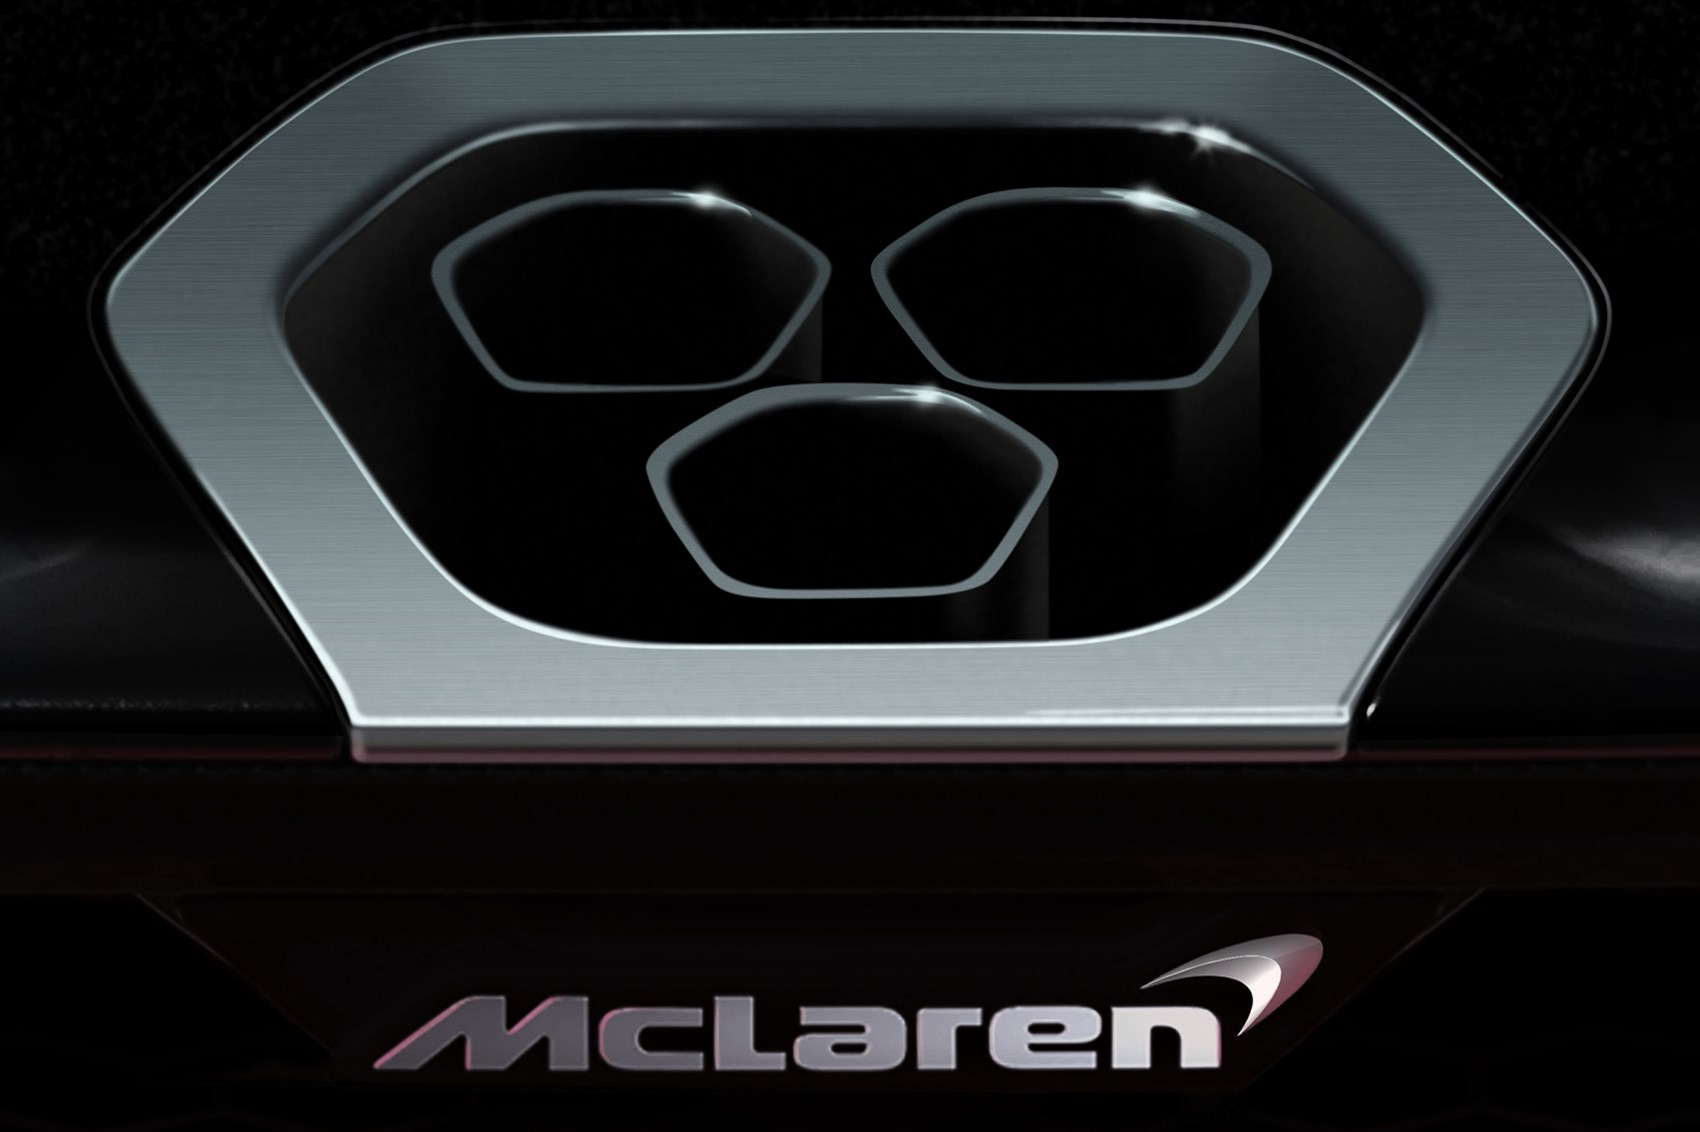 McLaren teases next Ultimate Series hypercar